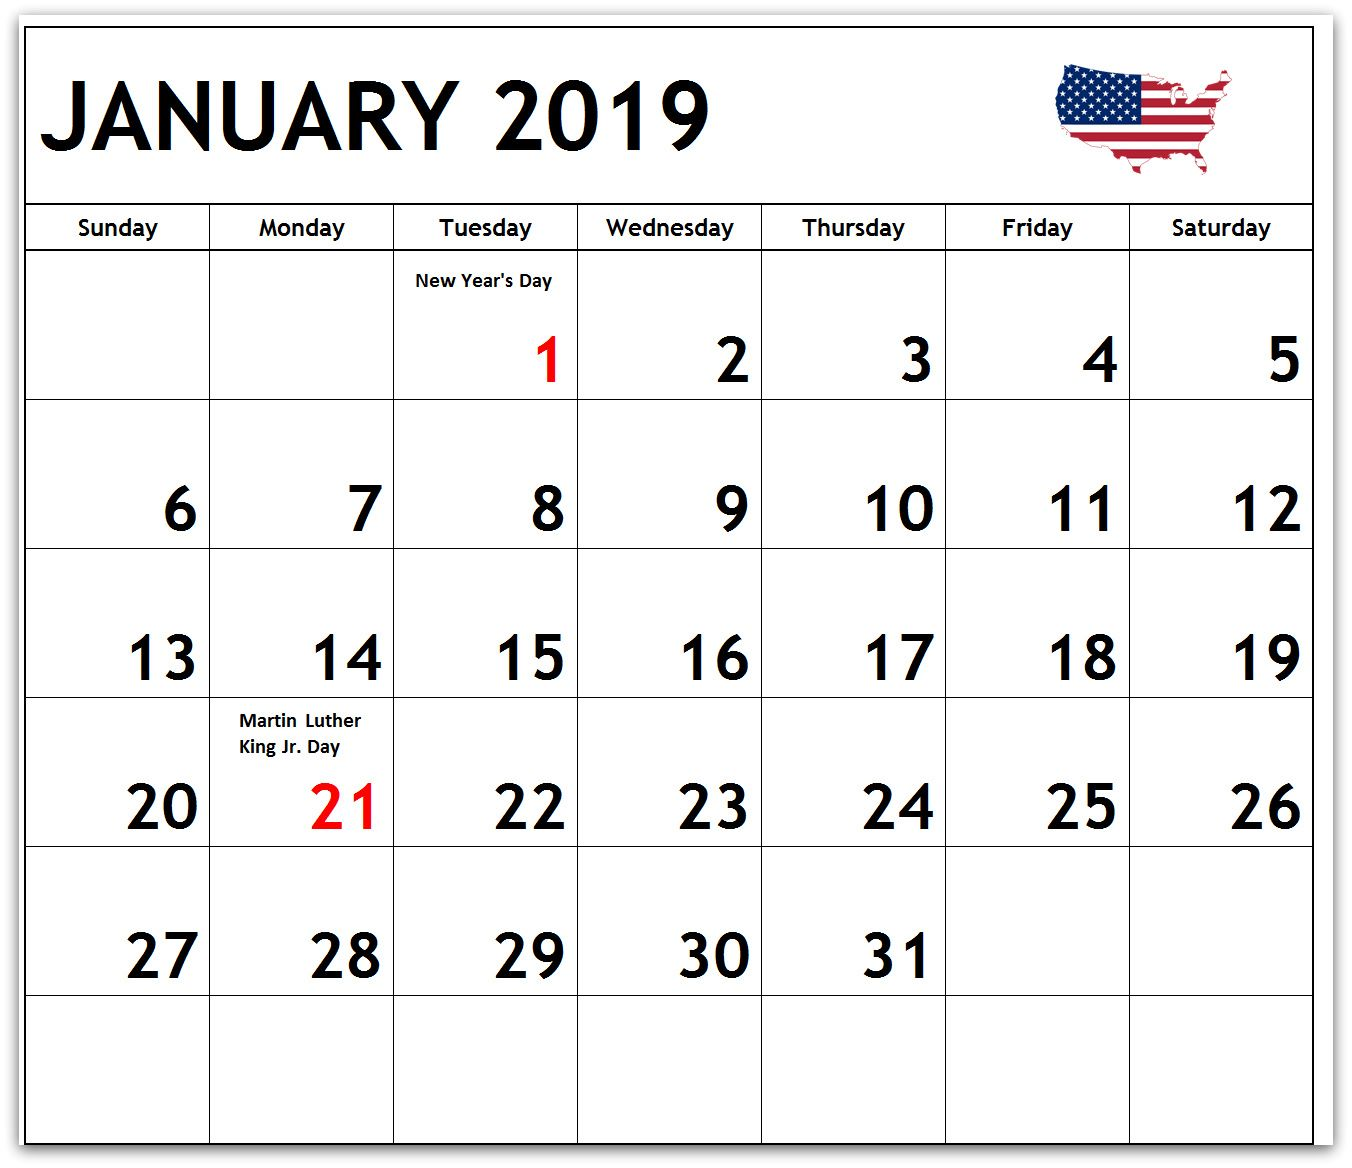 January 2019 Calendar Us Holidays january 2019 us holidays calendar | 2019 Calendars in 2019